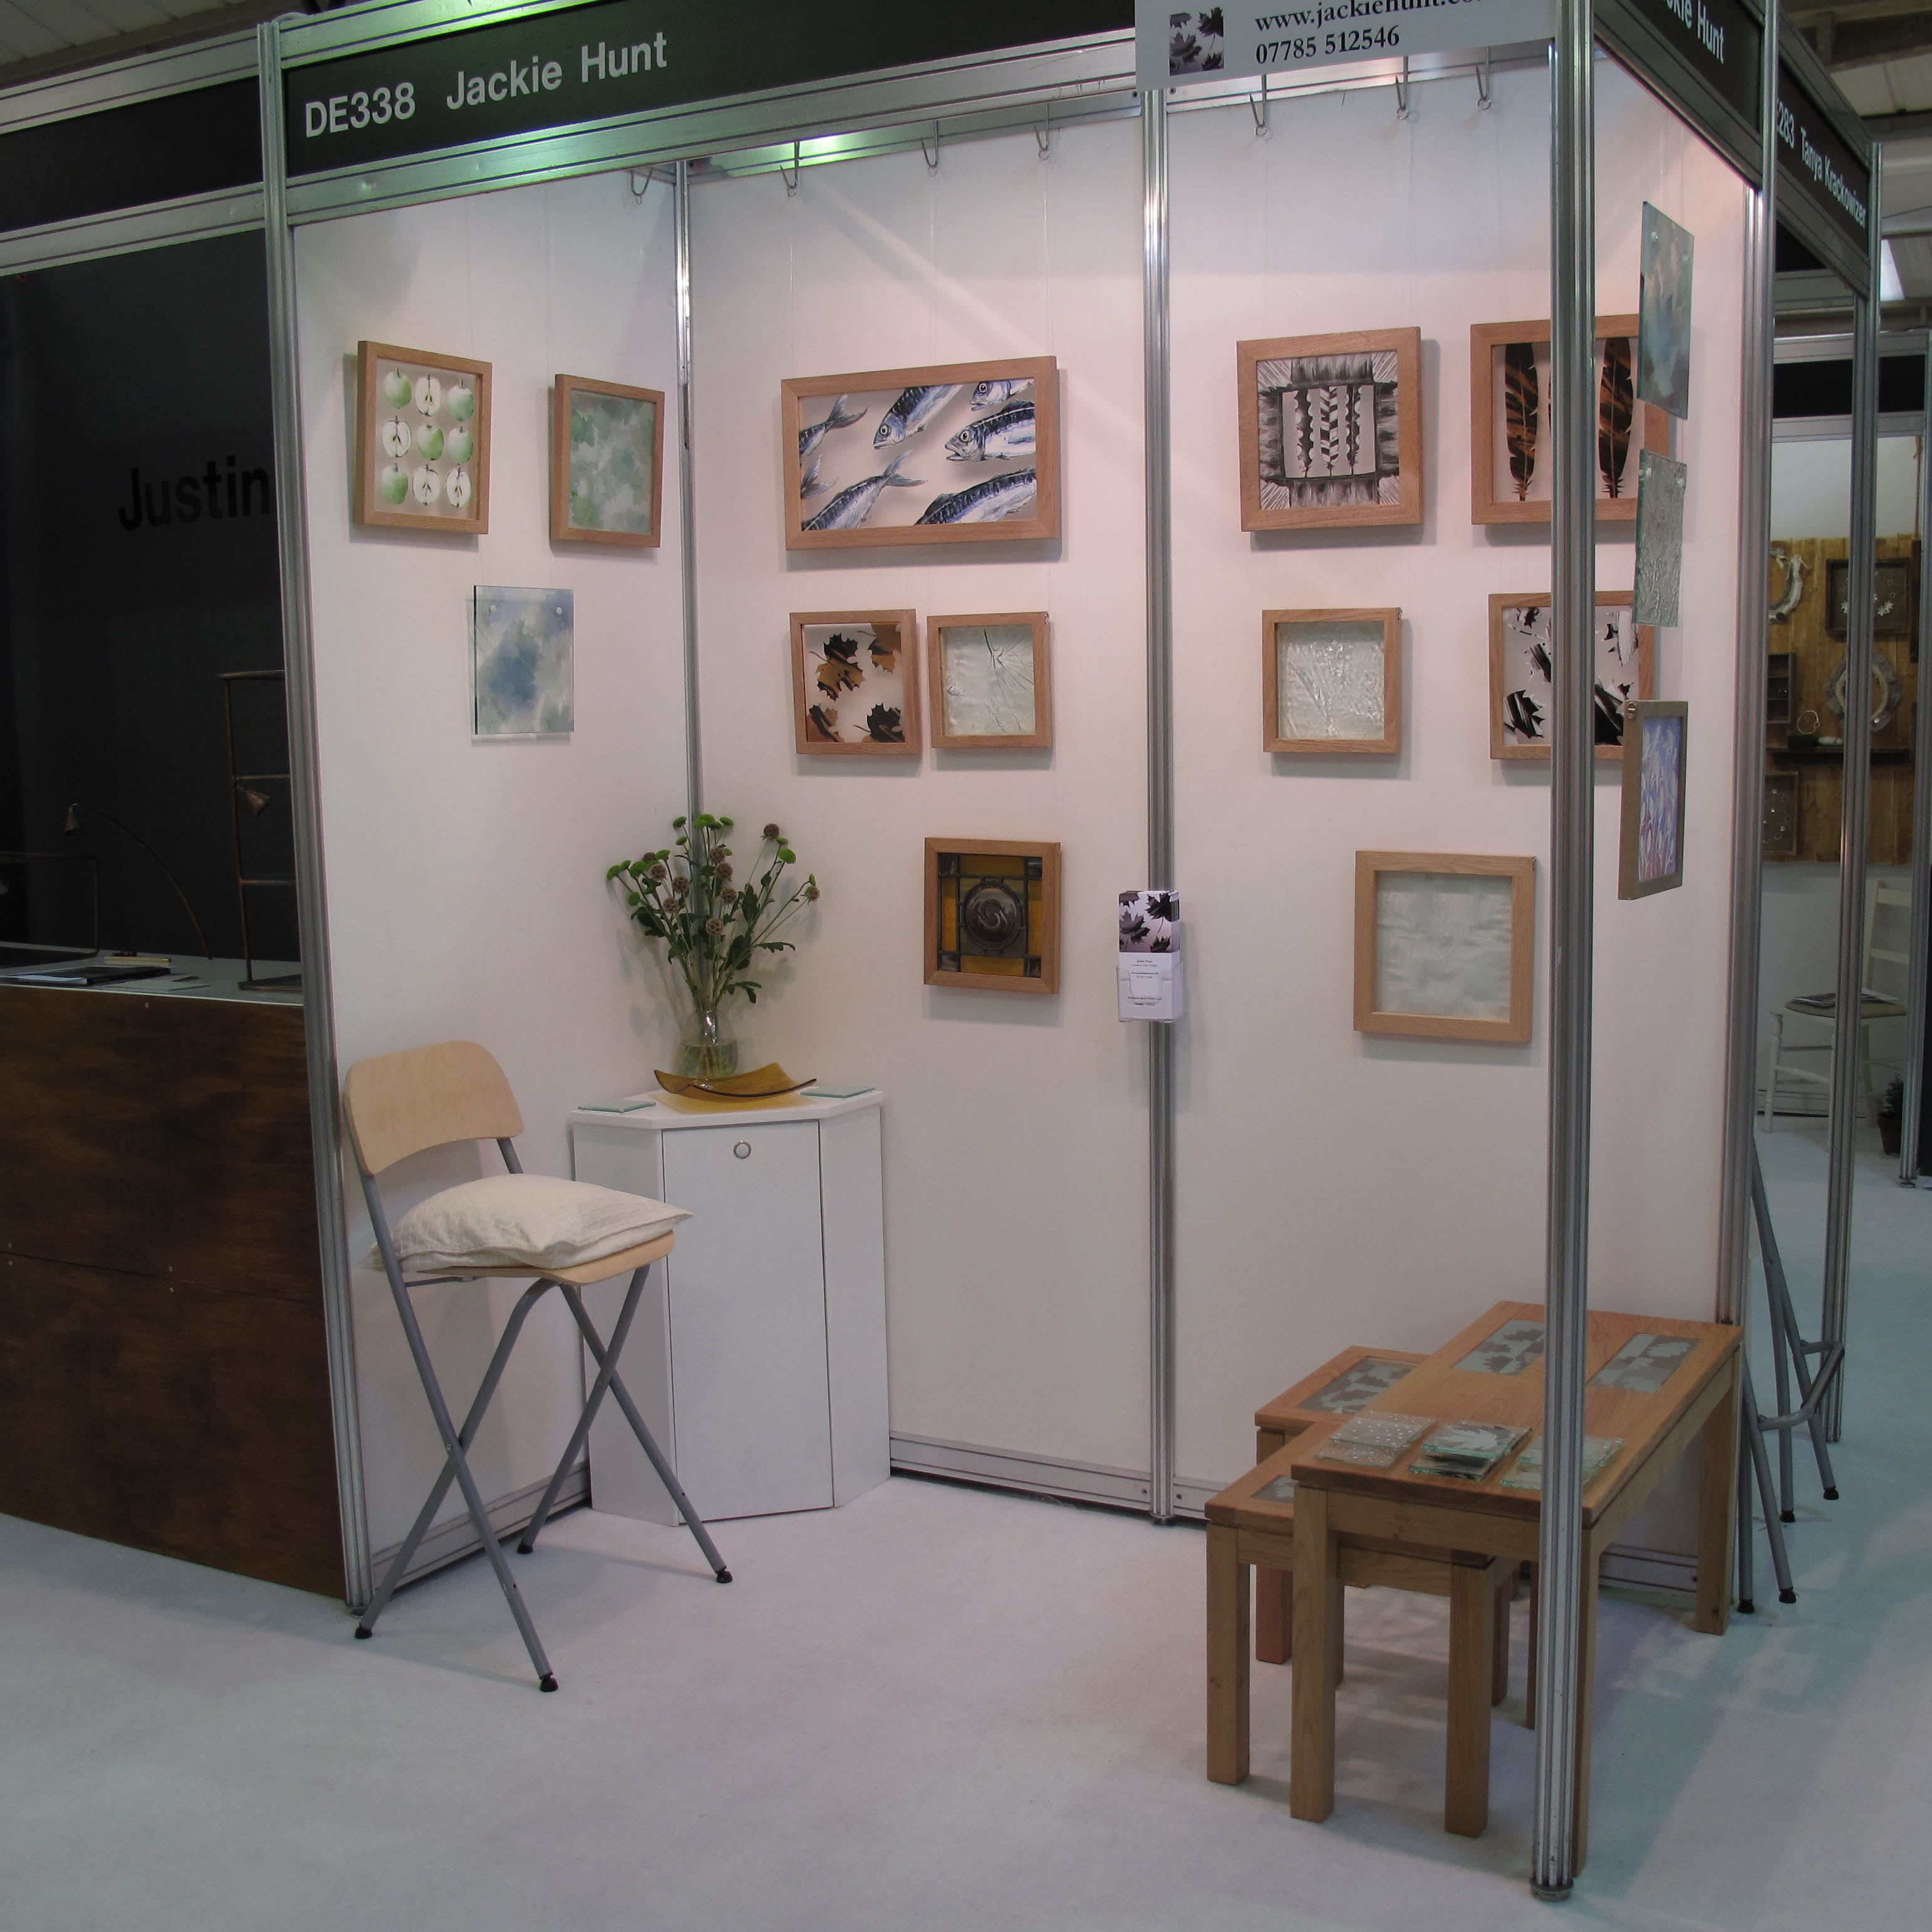 Exhibition Stand Design Harrogate : Jackie hunt stained glass and illustration